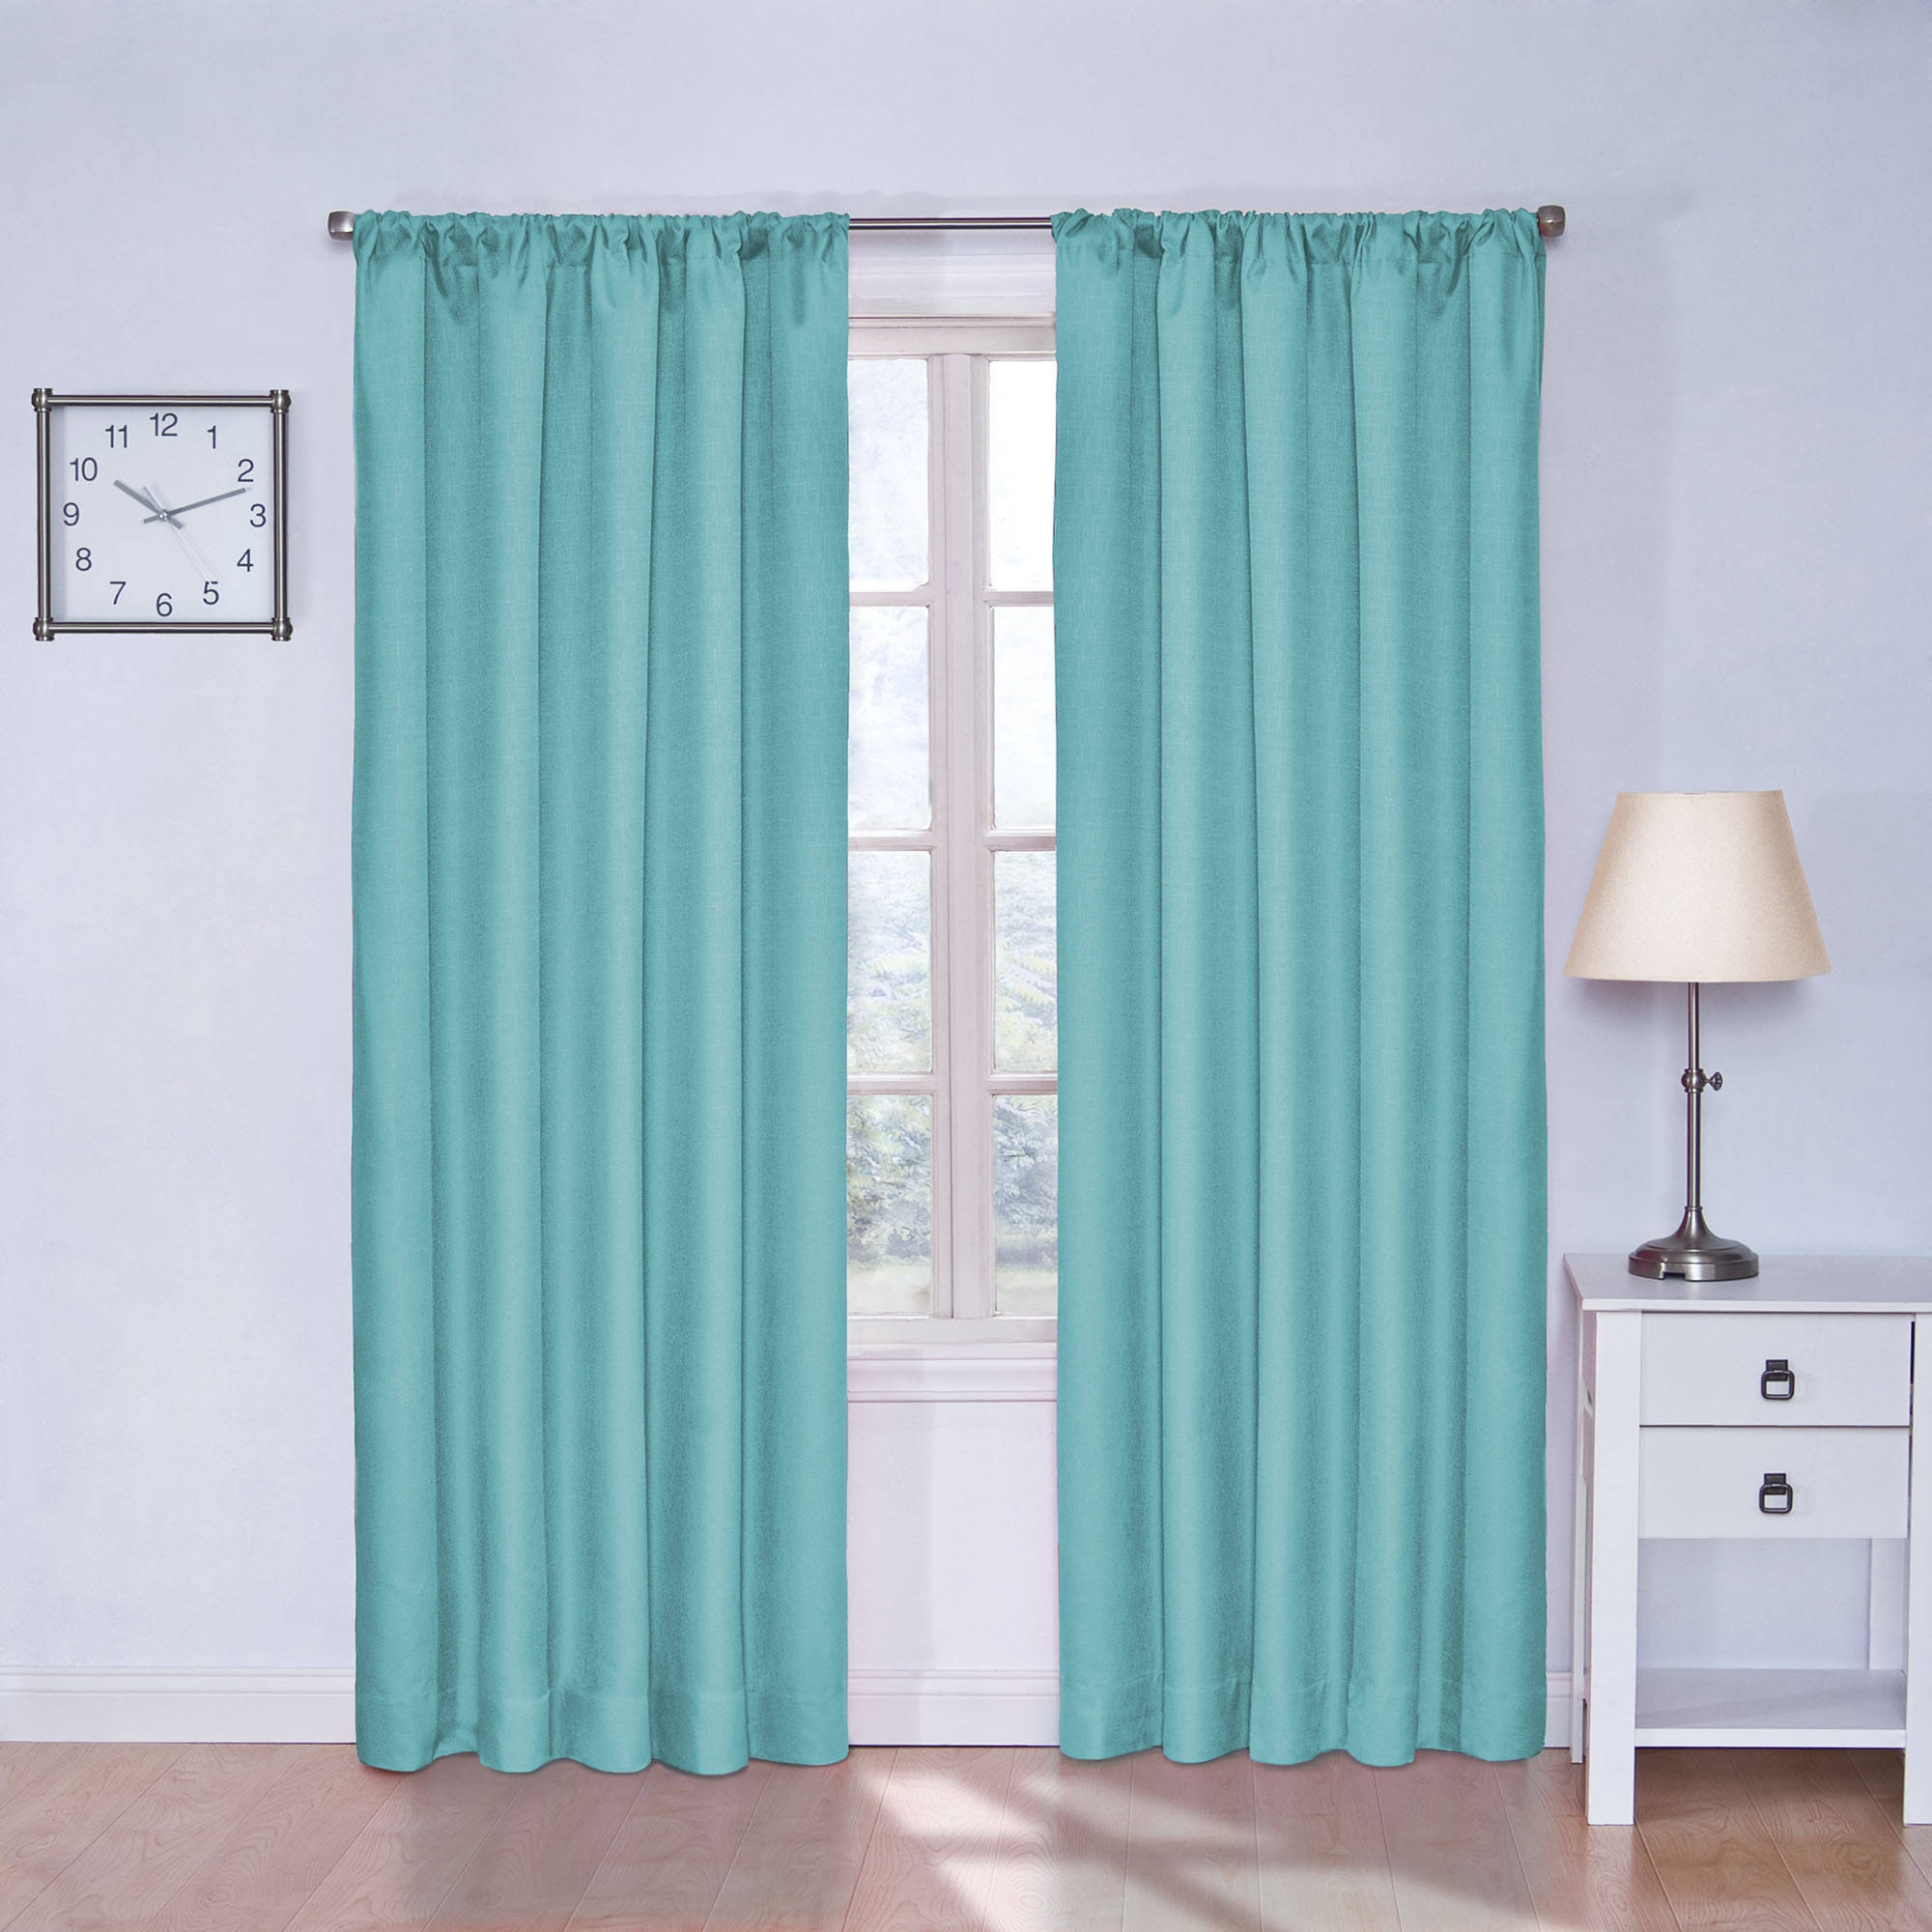 Thermal Insulated Curtains Target Business For Curtains Decoration With Regard To Thermal Insulation Curtains (Image 13 of 15)